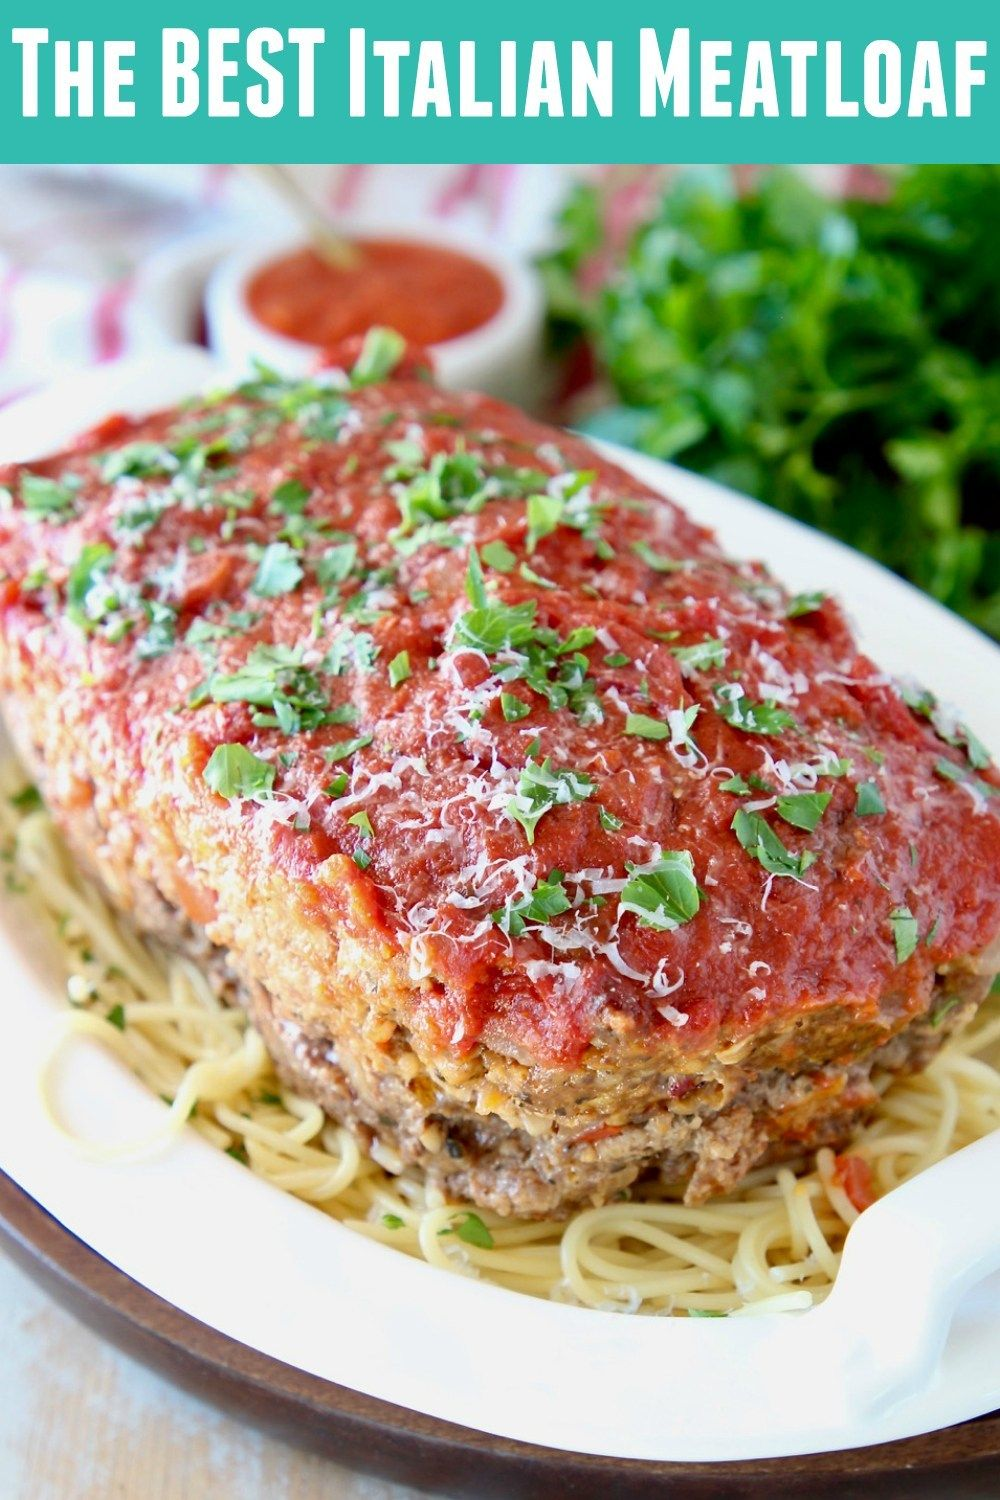 Italian Sausage And Ground Beef Are Combined With Italian Herbs Parmesan Ricotta Ch Italian Meatloaf Ground Italian Sausage Recipes Italian Meatloaf Recipes